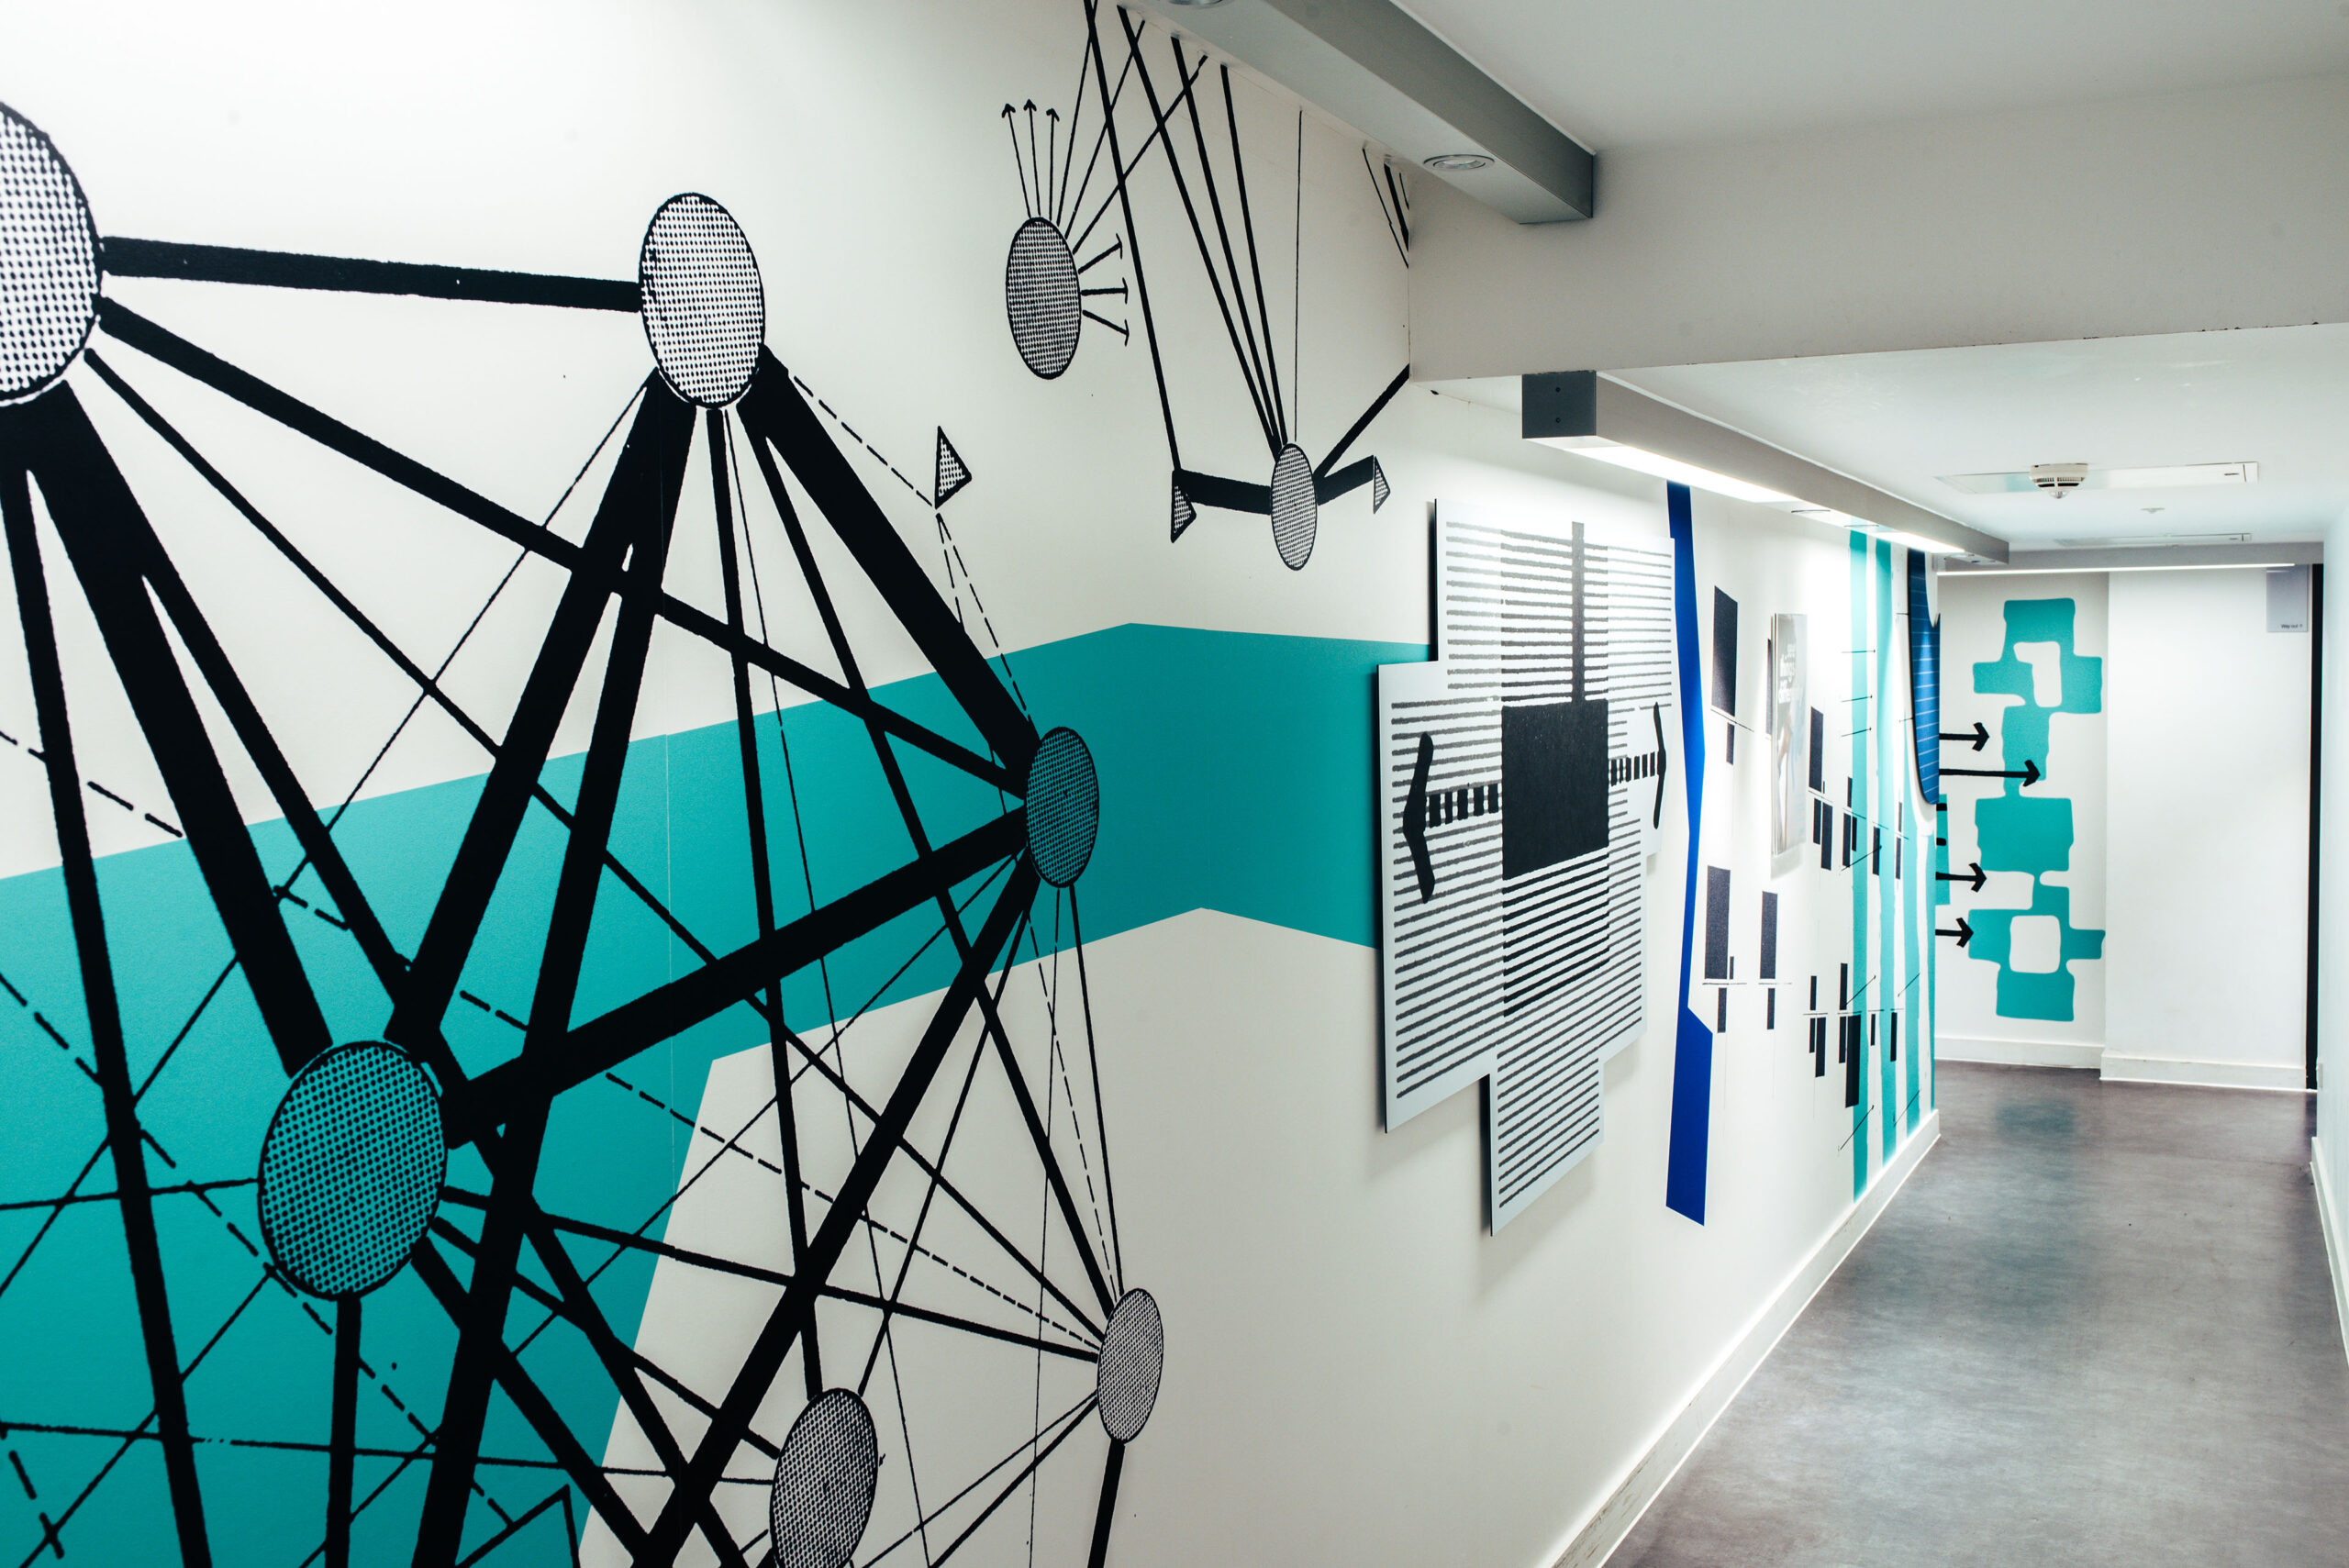 A photograph of a wall featuring a graphic installation at The Edge at the University of Bath designed by City Edition Studio as part of Smith and Lewarne